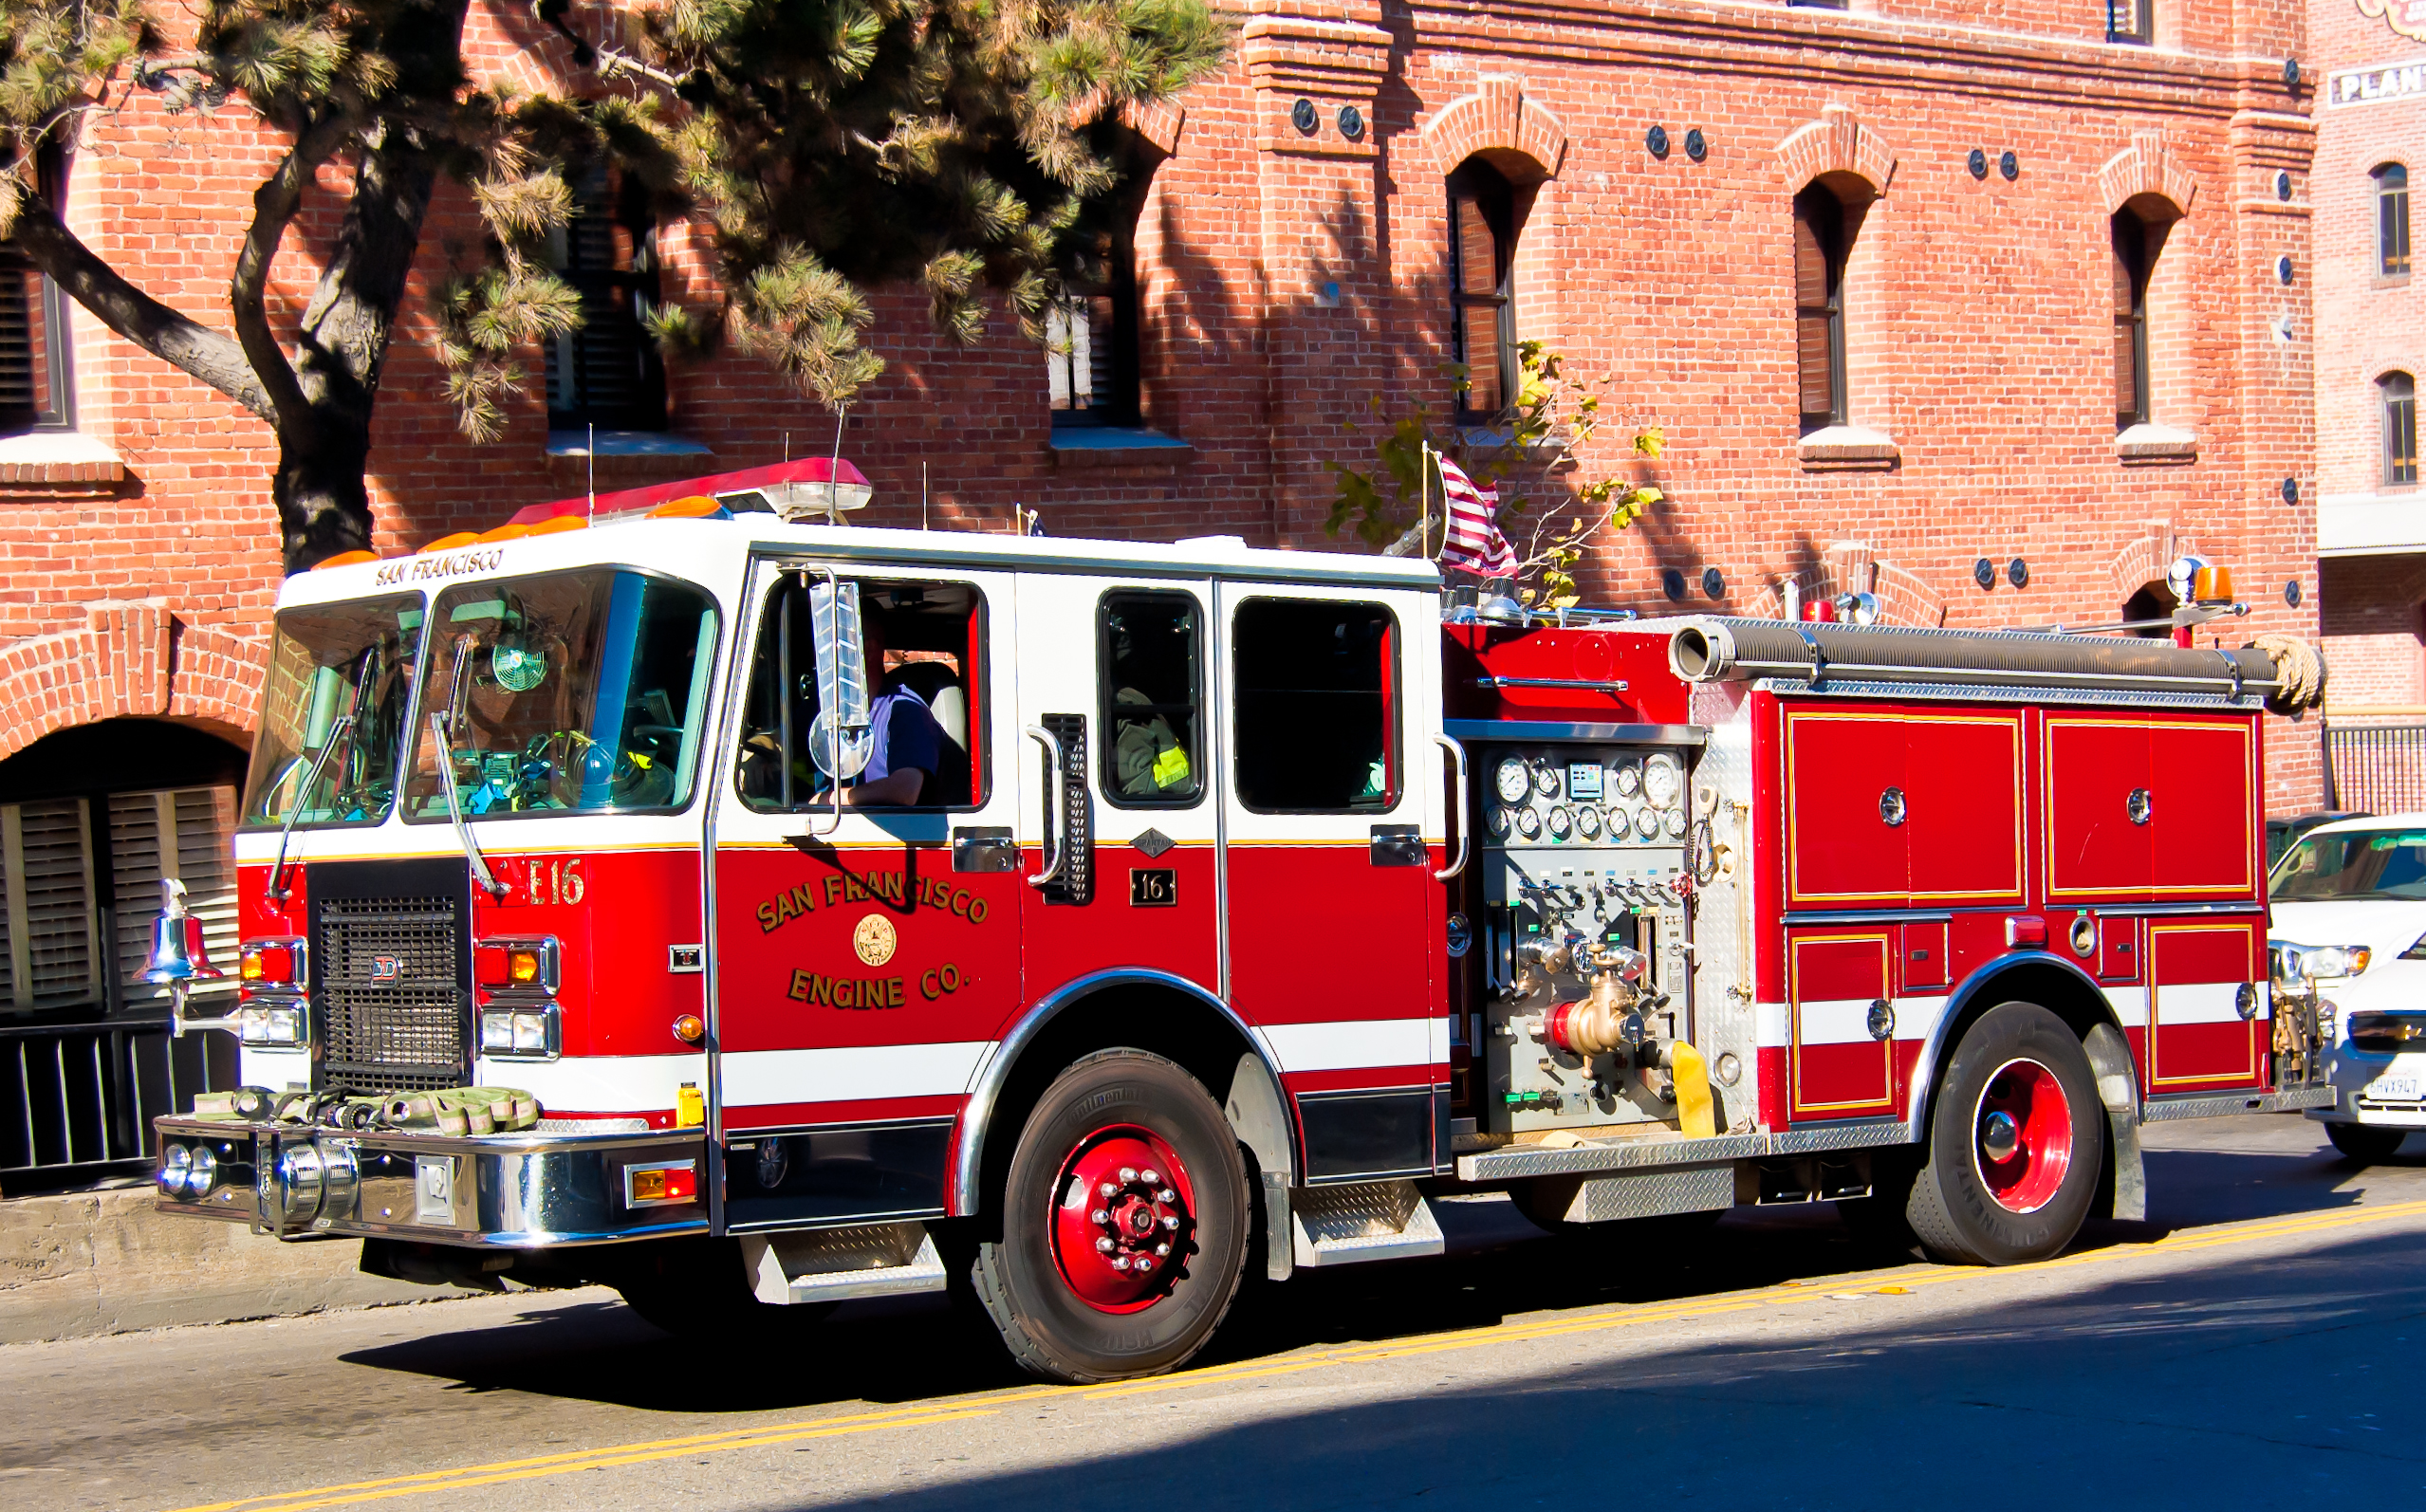 Used Cars Bakersfield >> File:USA California San-Francisco Red Fire Truck.jpg - Wikimedia Commons